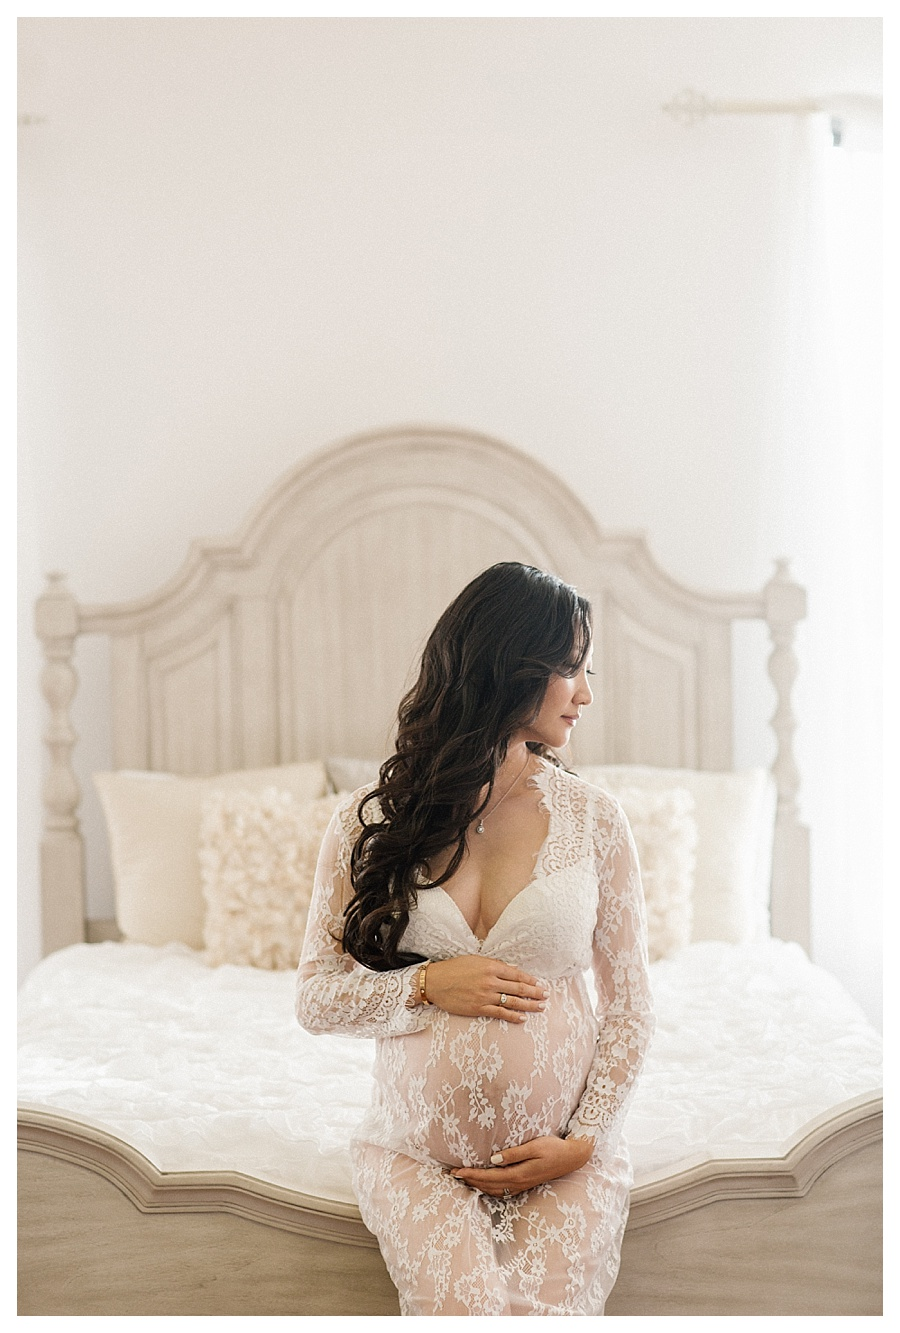 boudoir maternity photo shoot at the loft photo studio for rent santa clara ca_0162.jpg